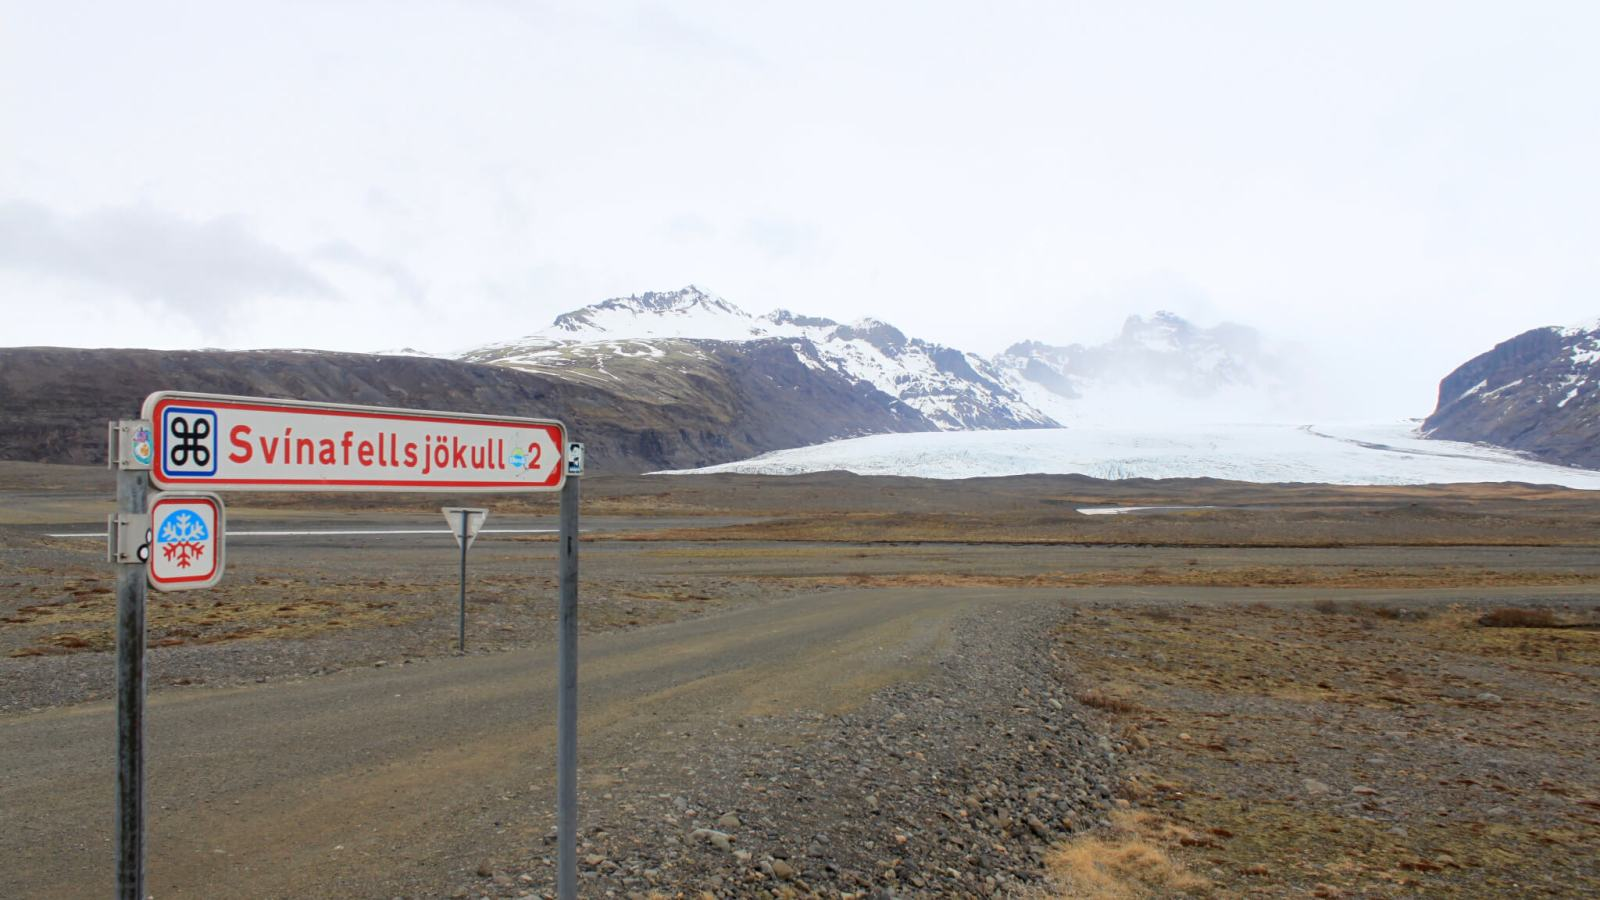 Dirt road to Svínafellsjökull with sign pointing to glacier